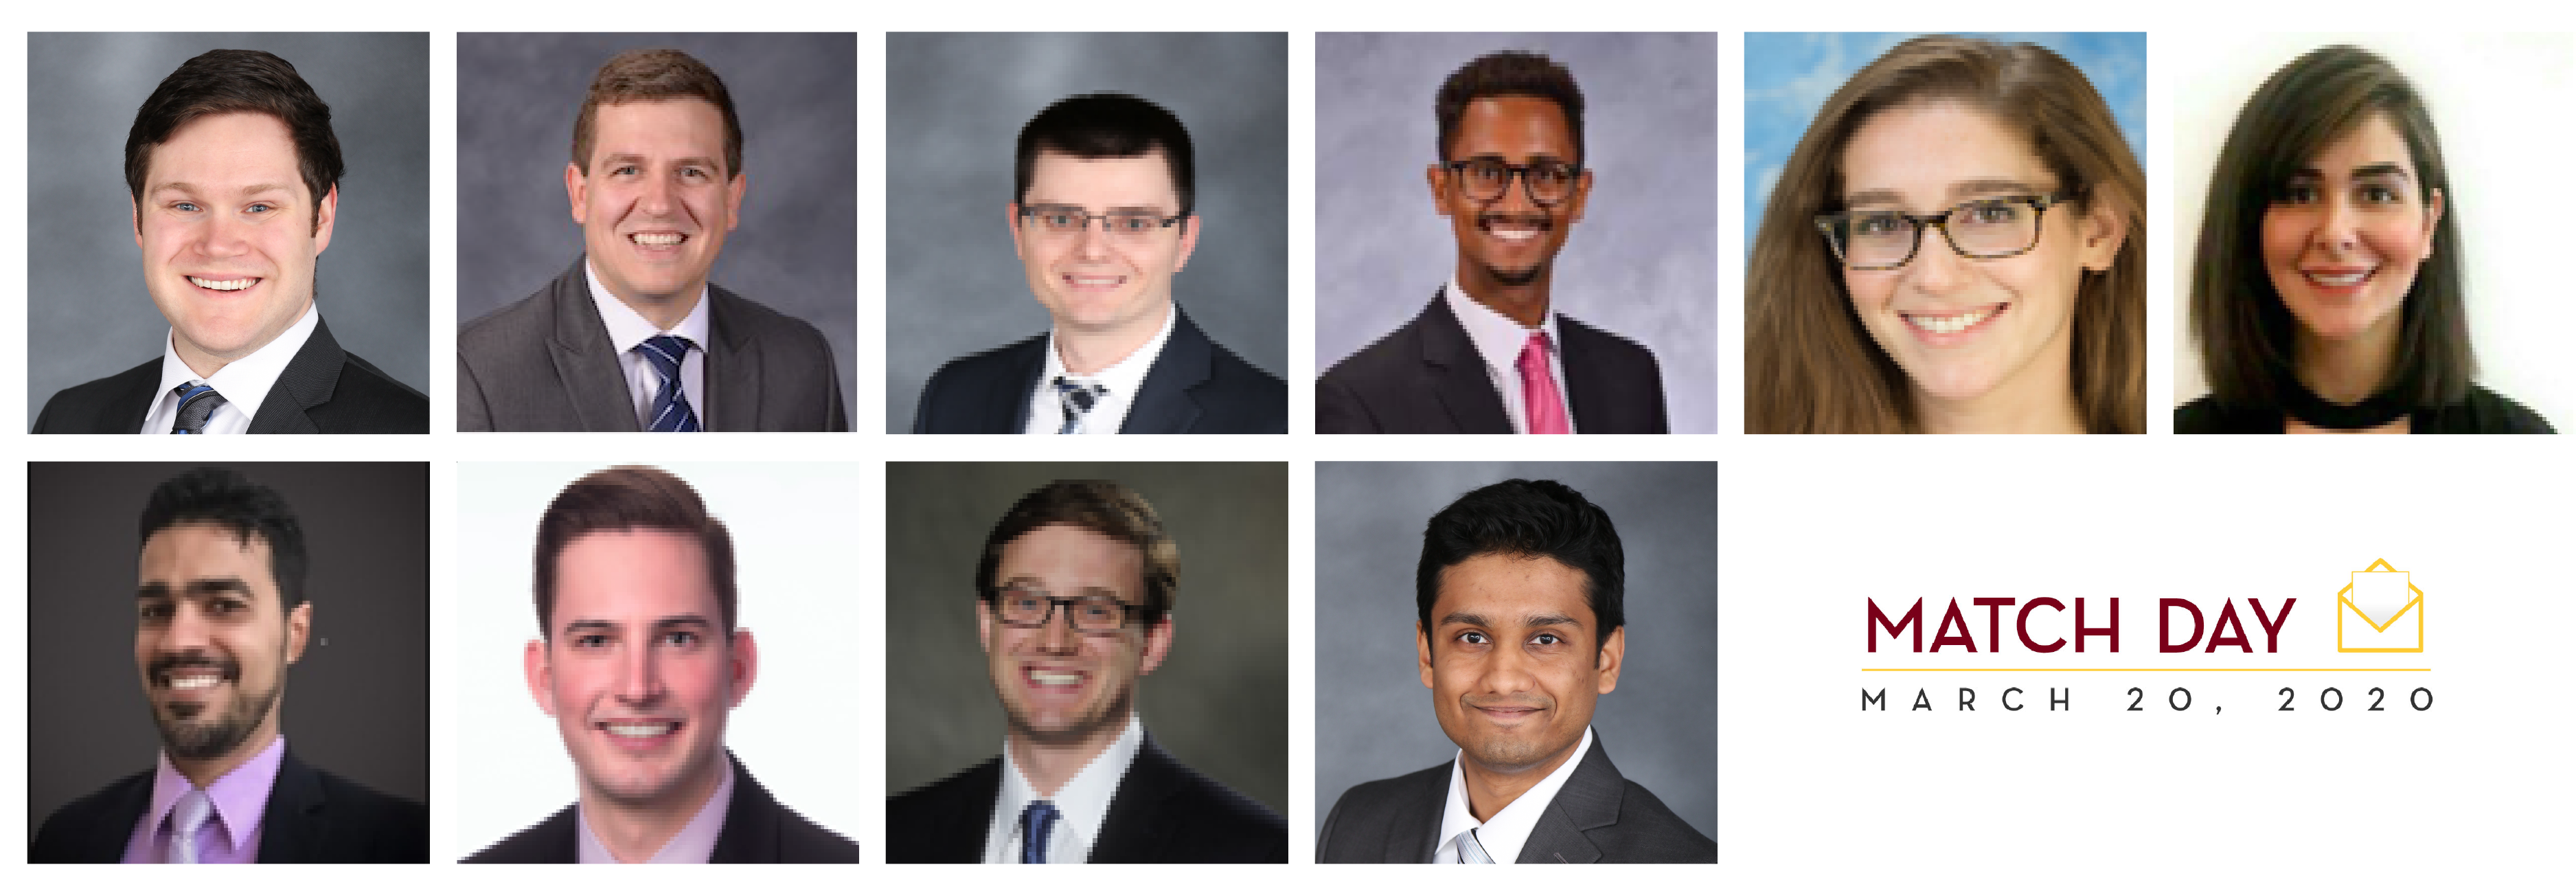 pgy 1 match students